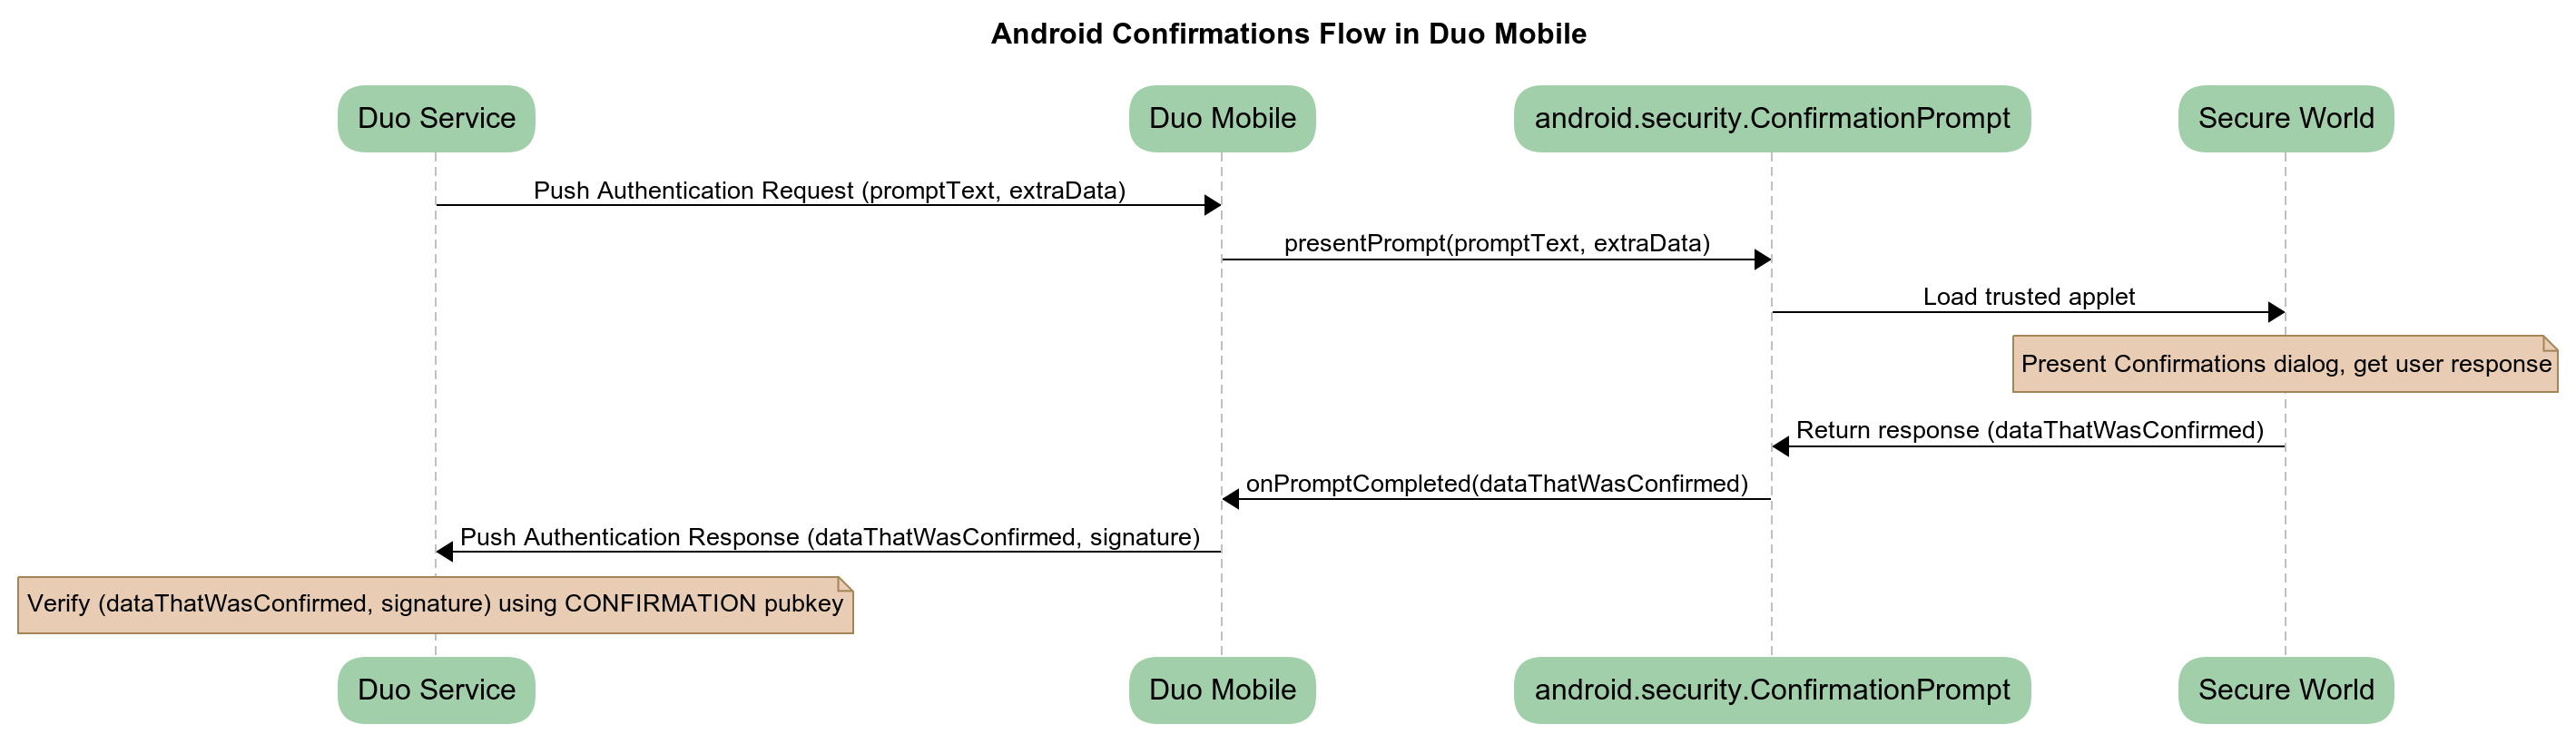 Humans Only: Duo Mobile and Android Protected Confirmation